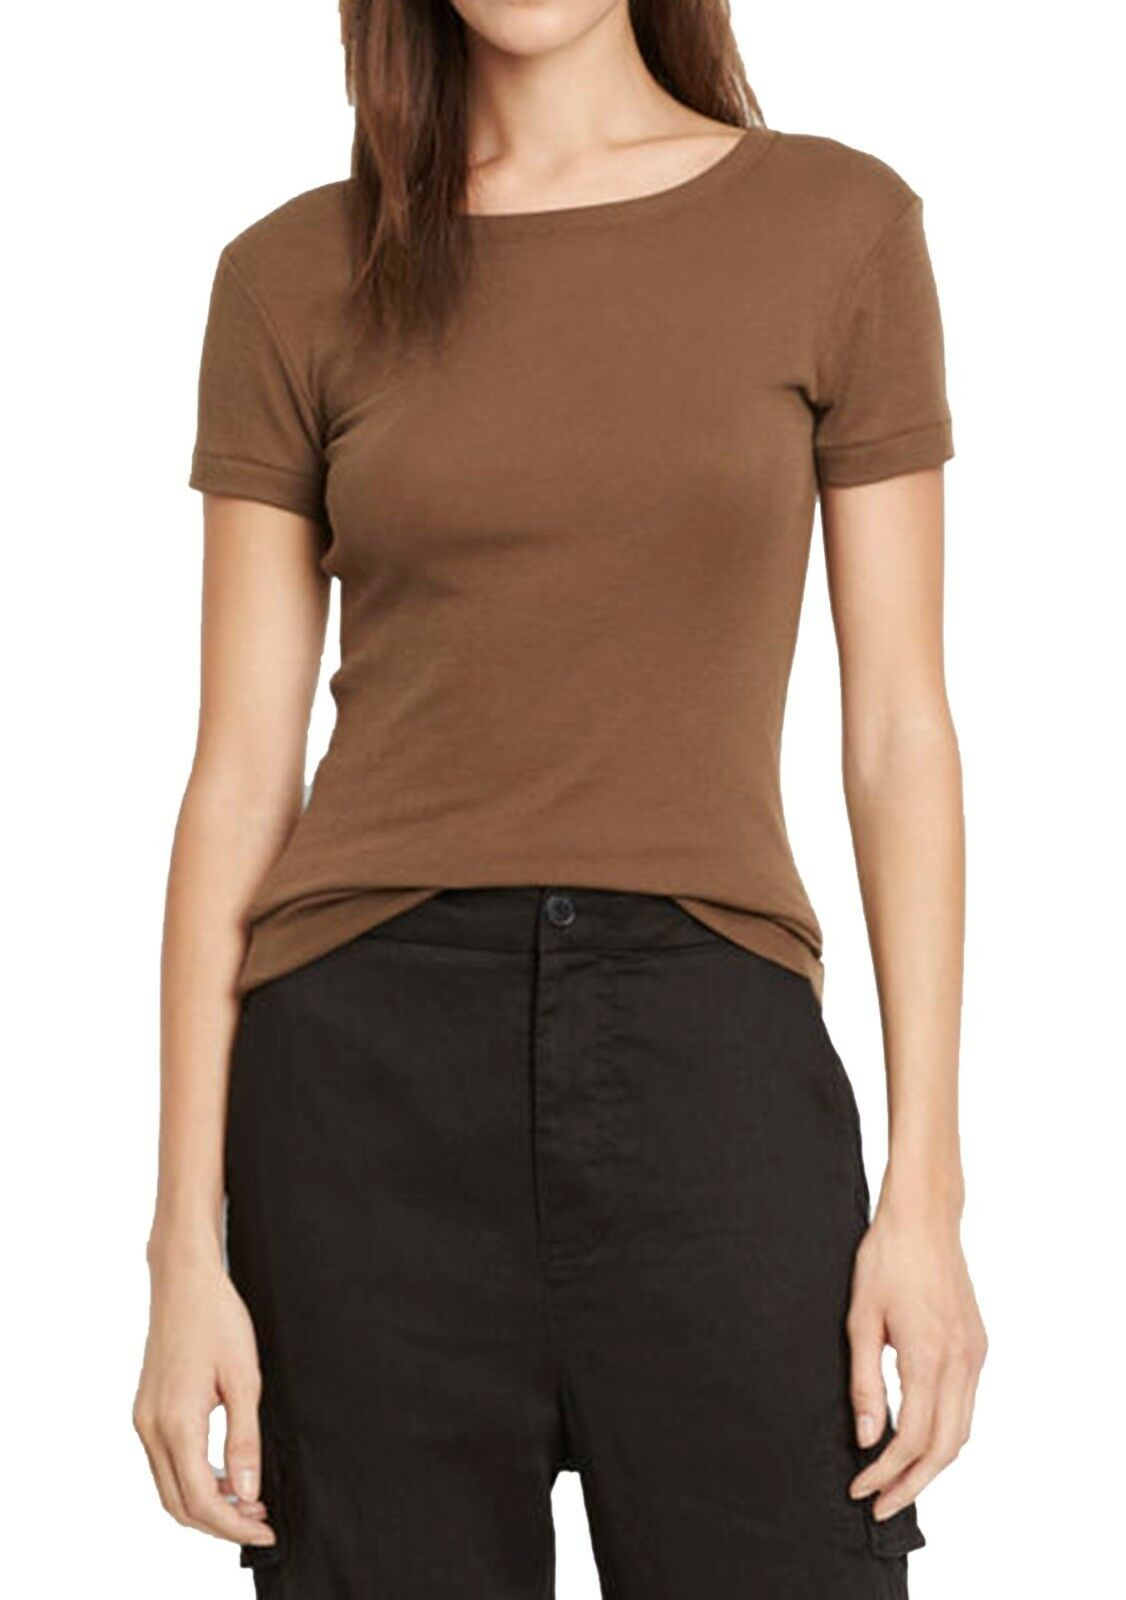 NWT  Vince Women's 70's Tee Knit Top Short Sleeve Brown fit T- Shirt Small S